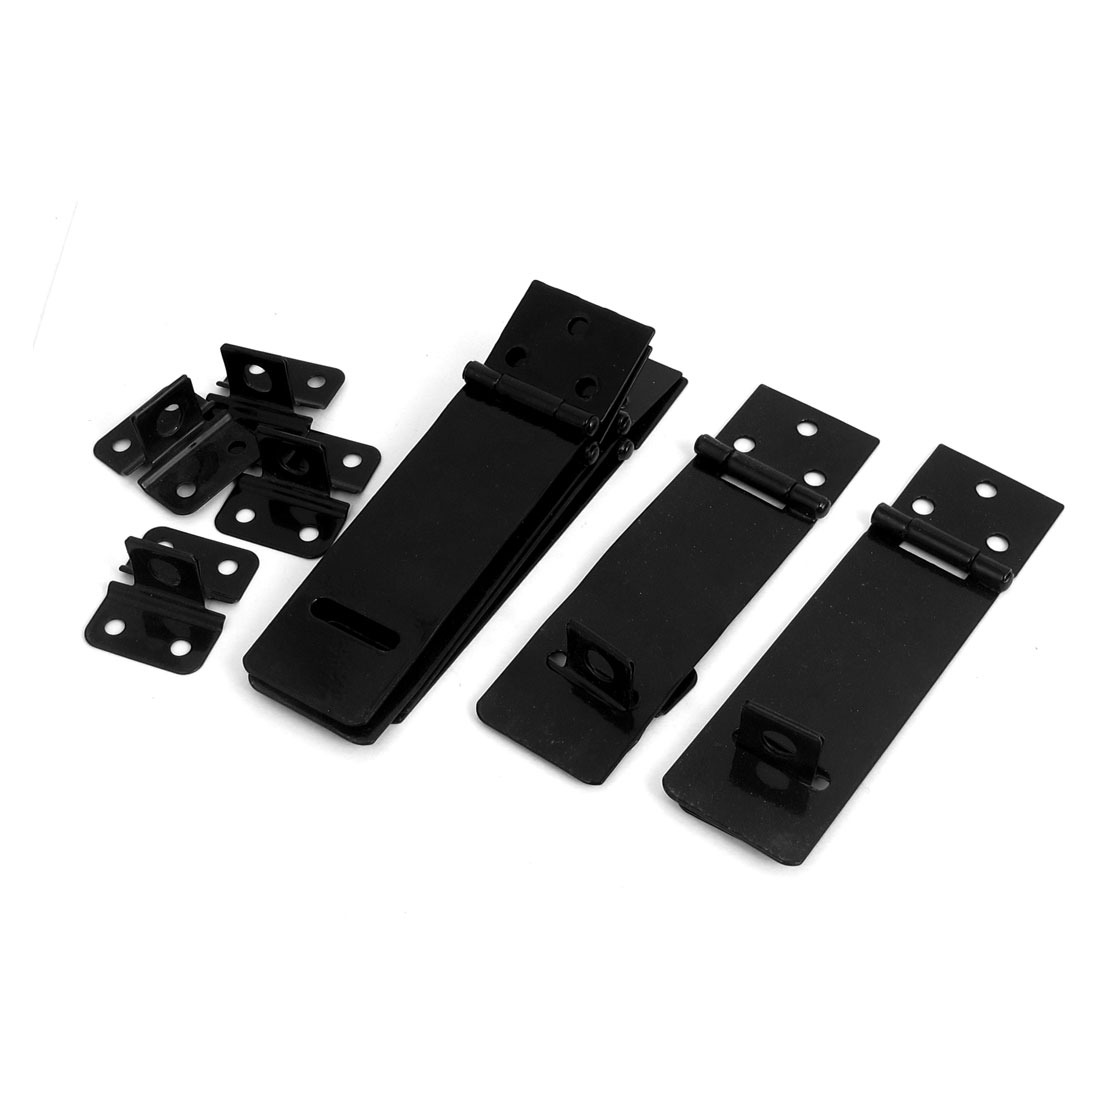 6 Set Shed Fence Door Cupborad Gate Safety Latch Catch Lock Black Metal Padlock Hasp Staple Fittings 117mm Long